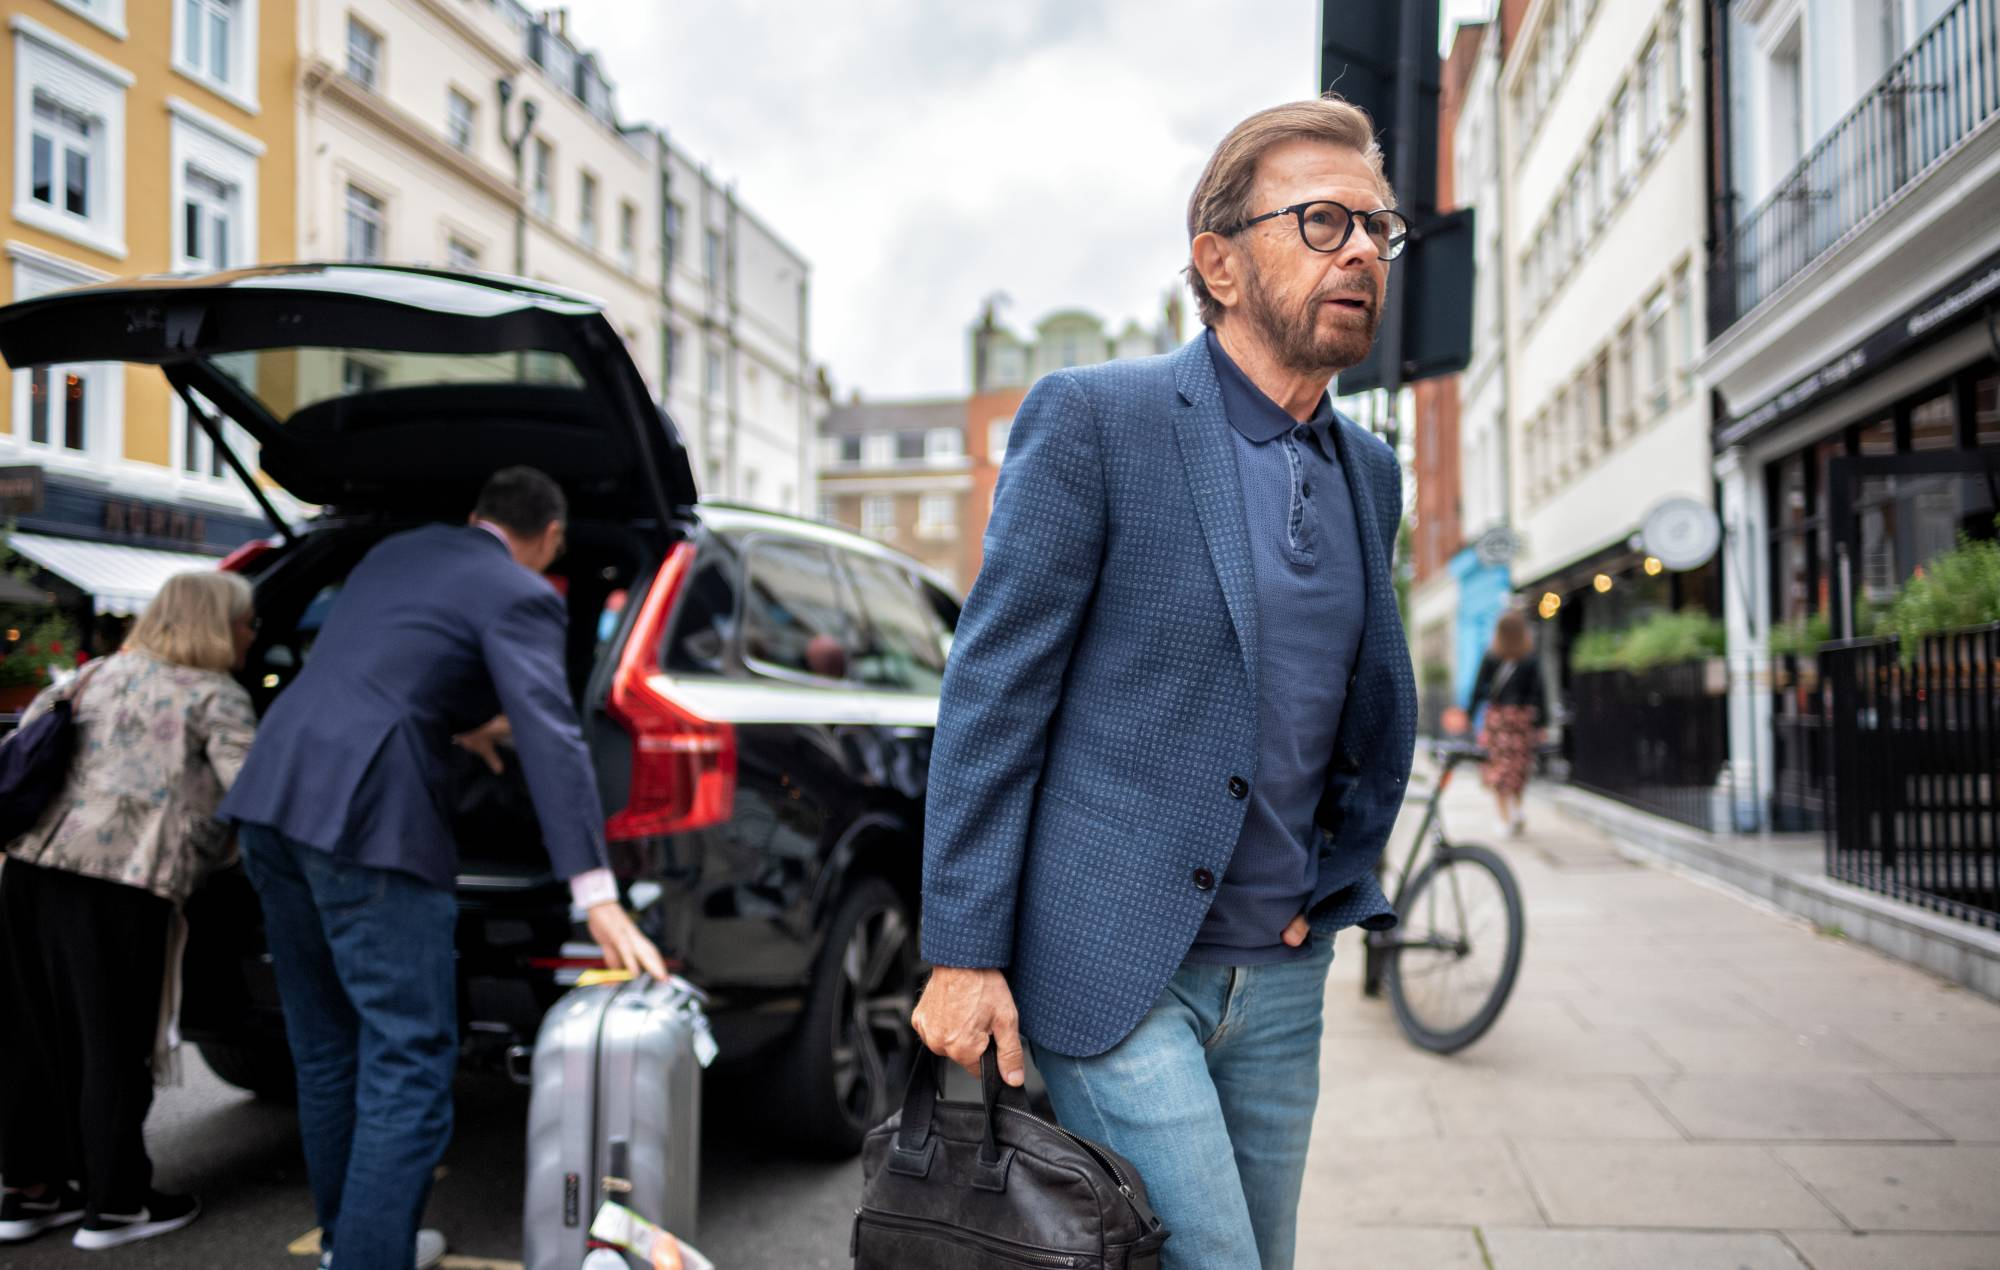 ABBA arrive in London for the announcement of new album and concert experience 'ABBA: VOYAGE'. Credit: Alan-Schaller